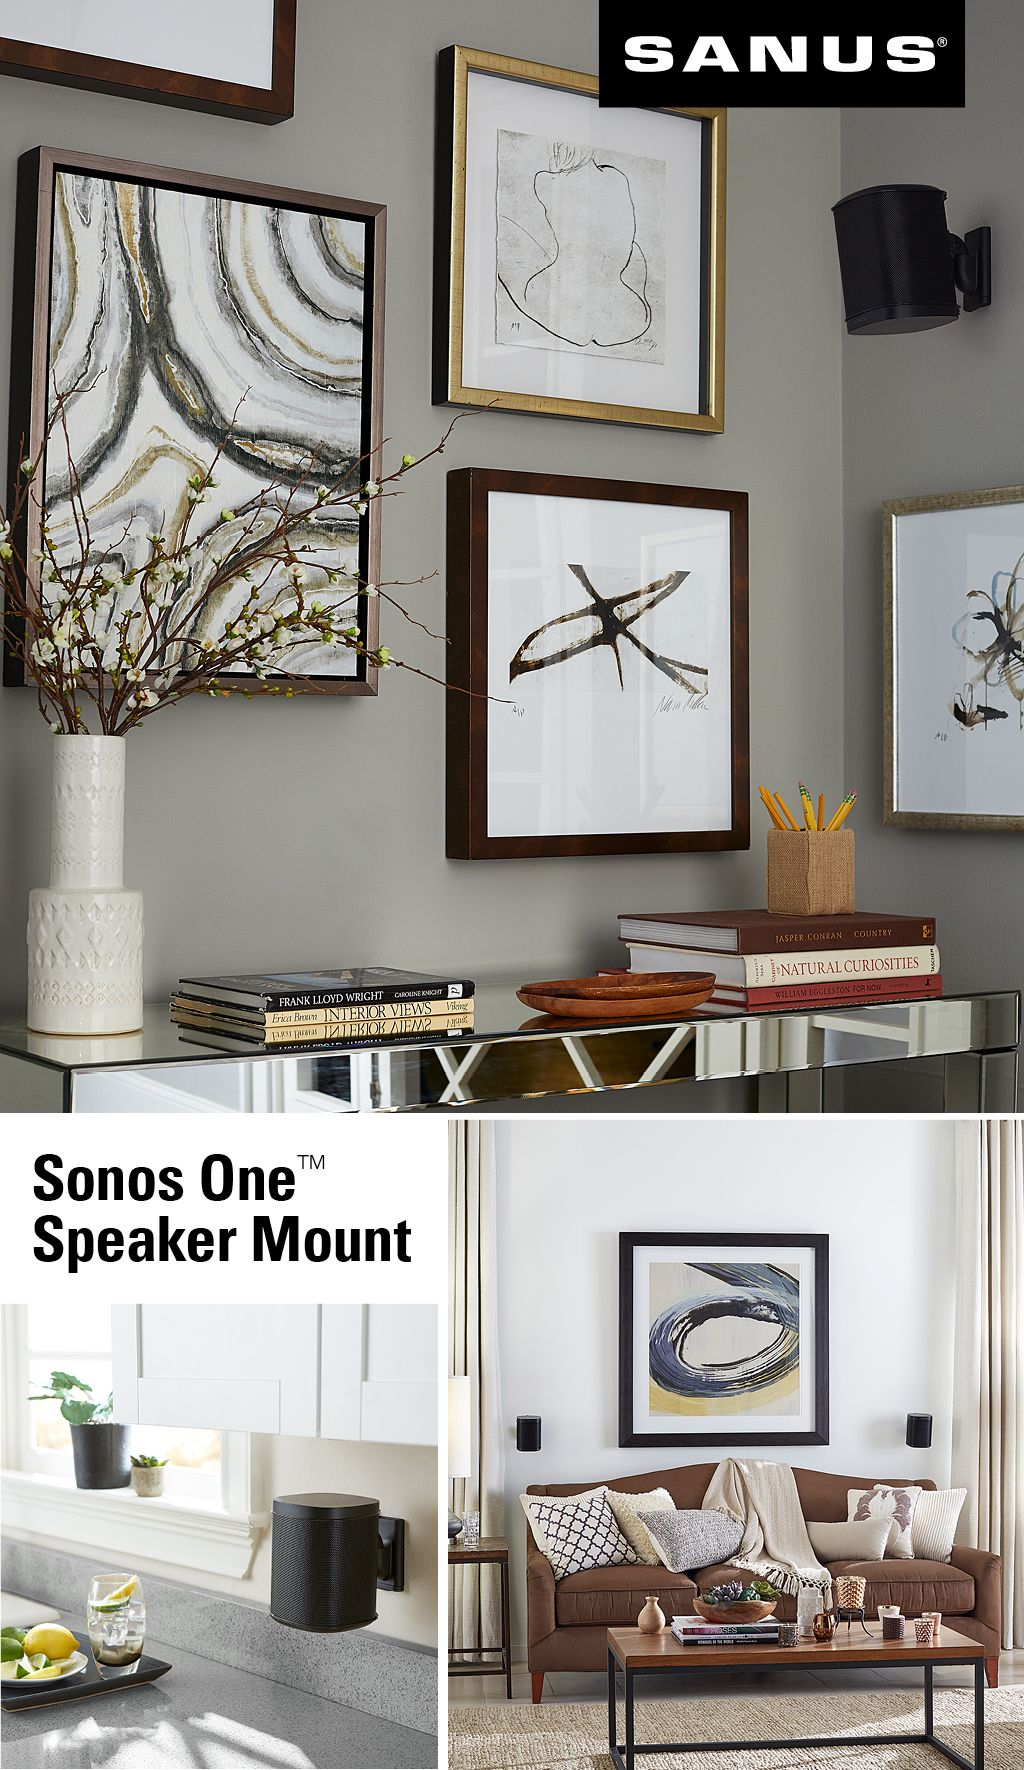 Smart placement ideas for your Sonos One